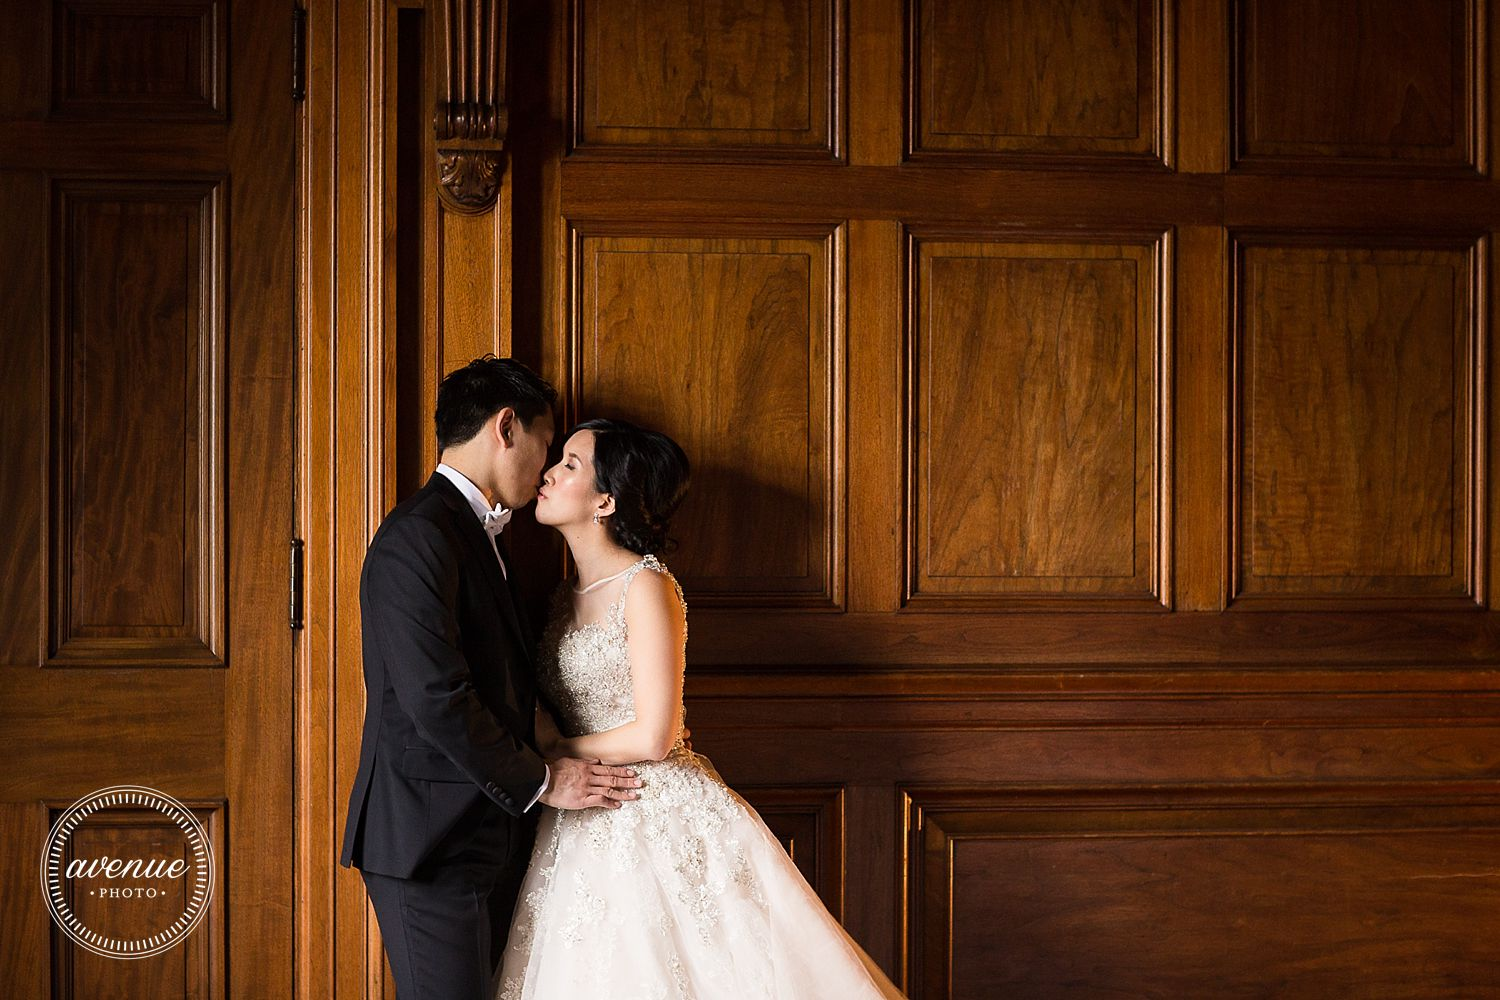 One King West Wedding Photos, Toronto Wedding Photographer